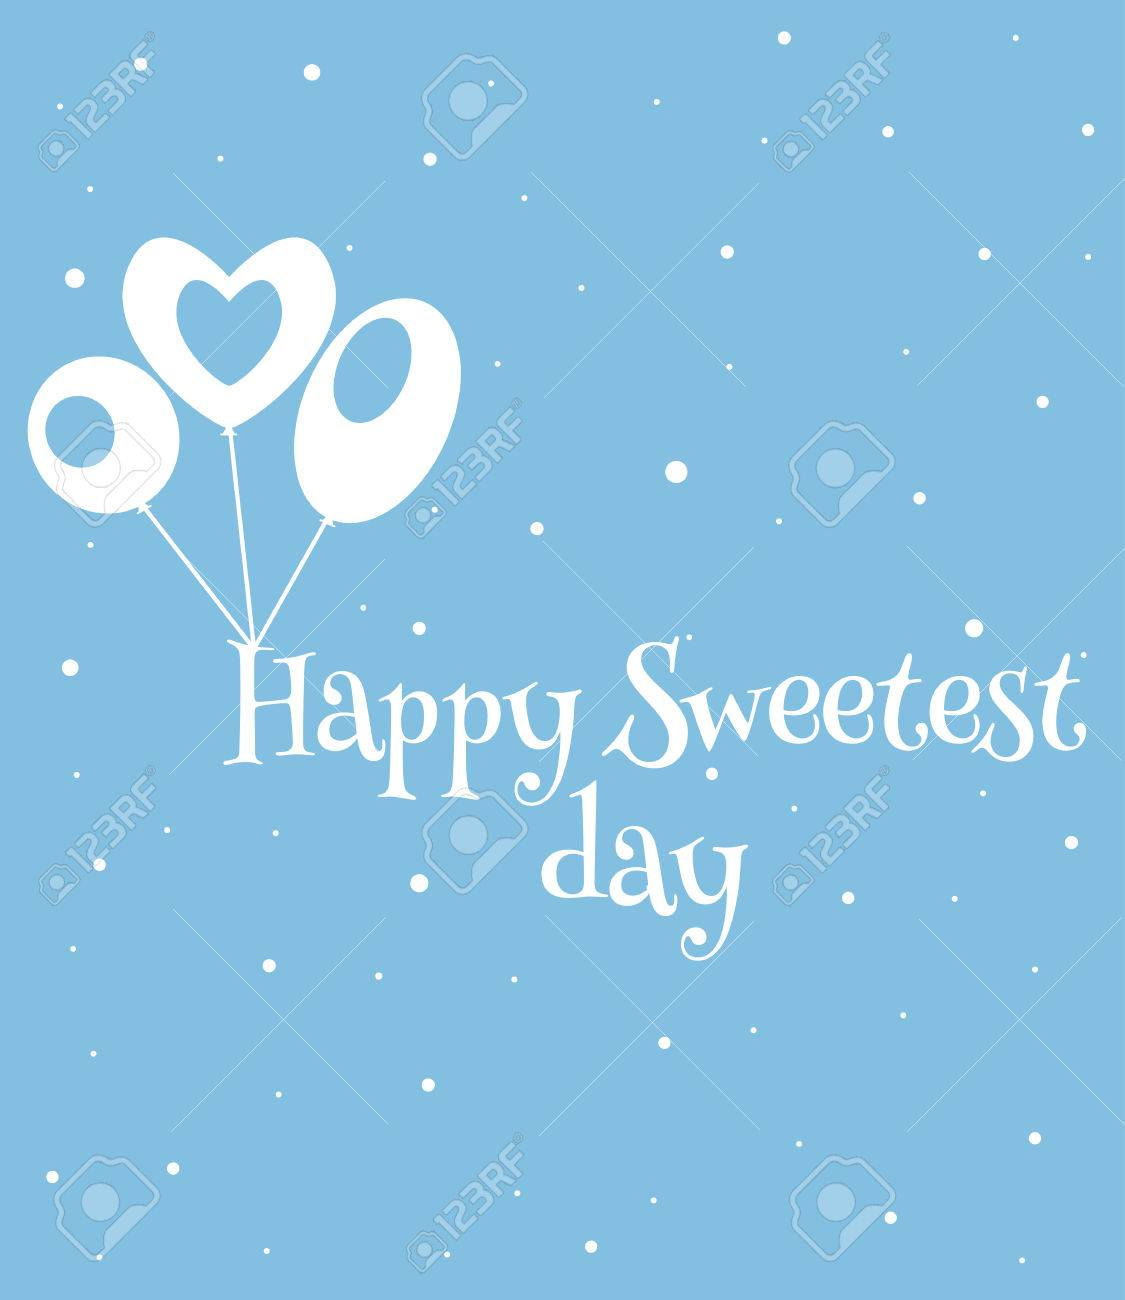 Happy sweetest day greetings card vector illustration royalty free happy sweetest day greetings card vector illustration stock vector 66780723 m4hsunfo